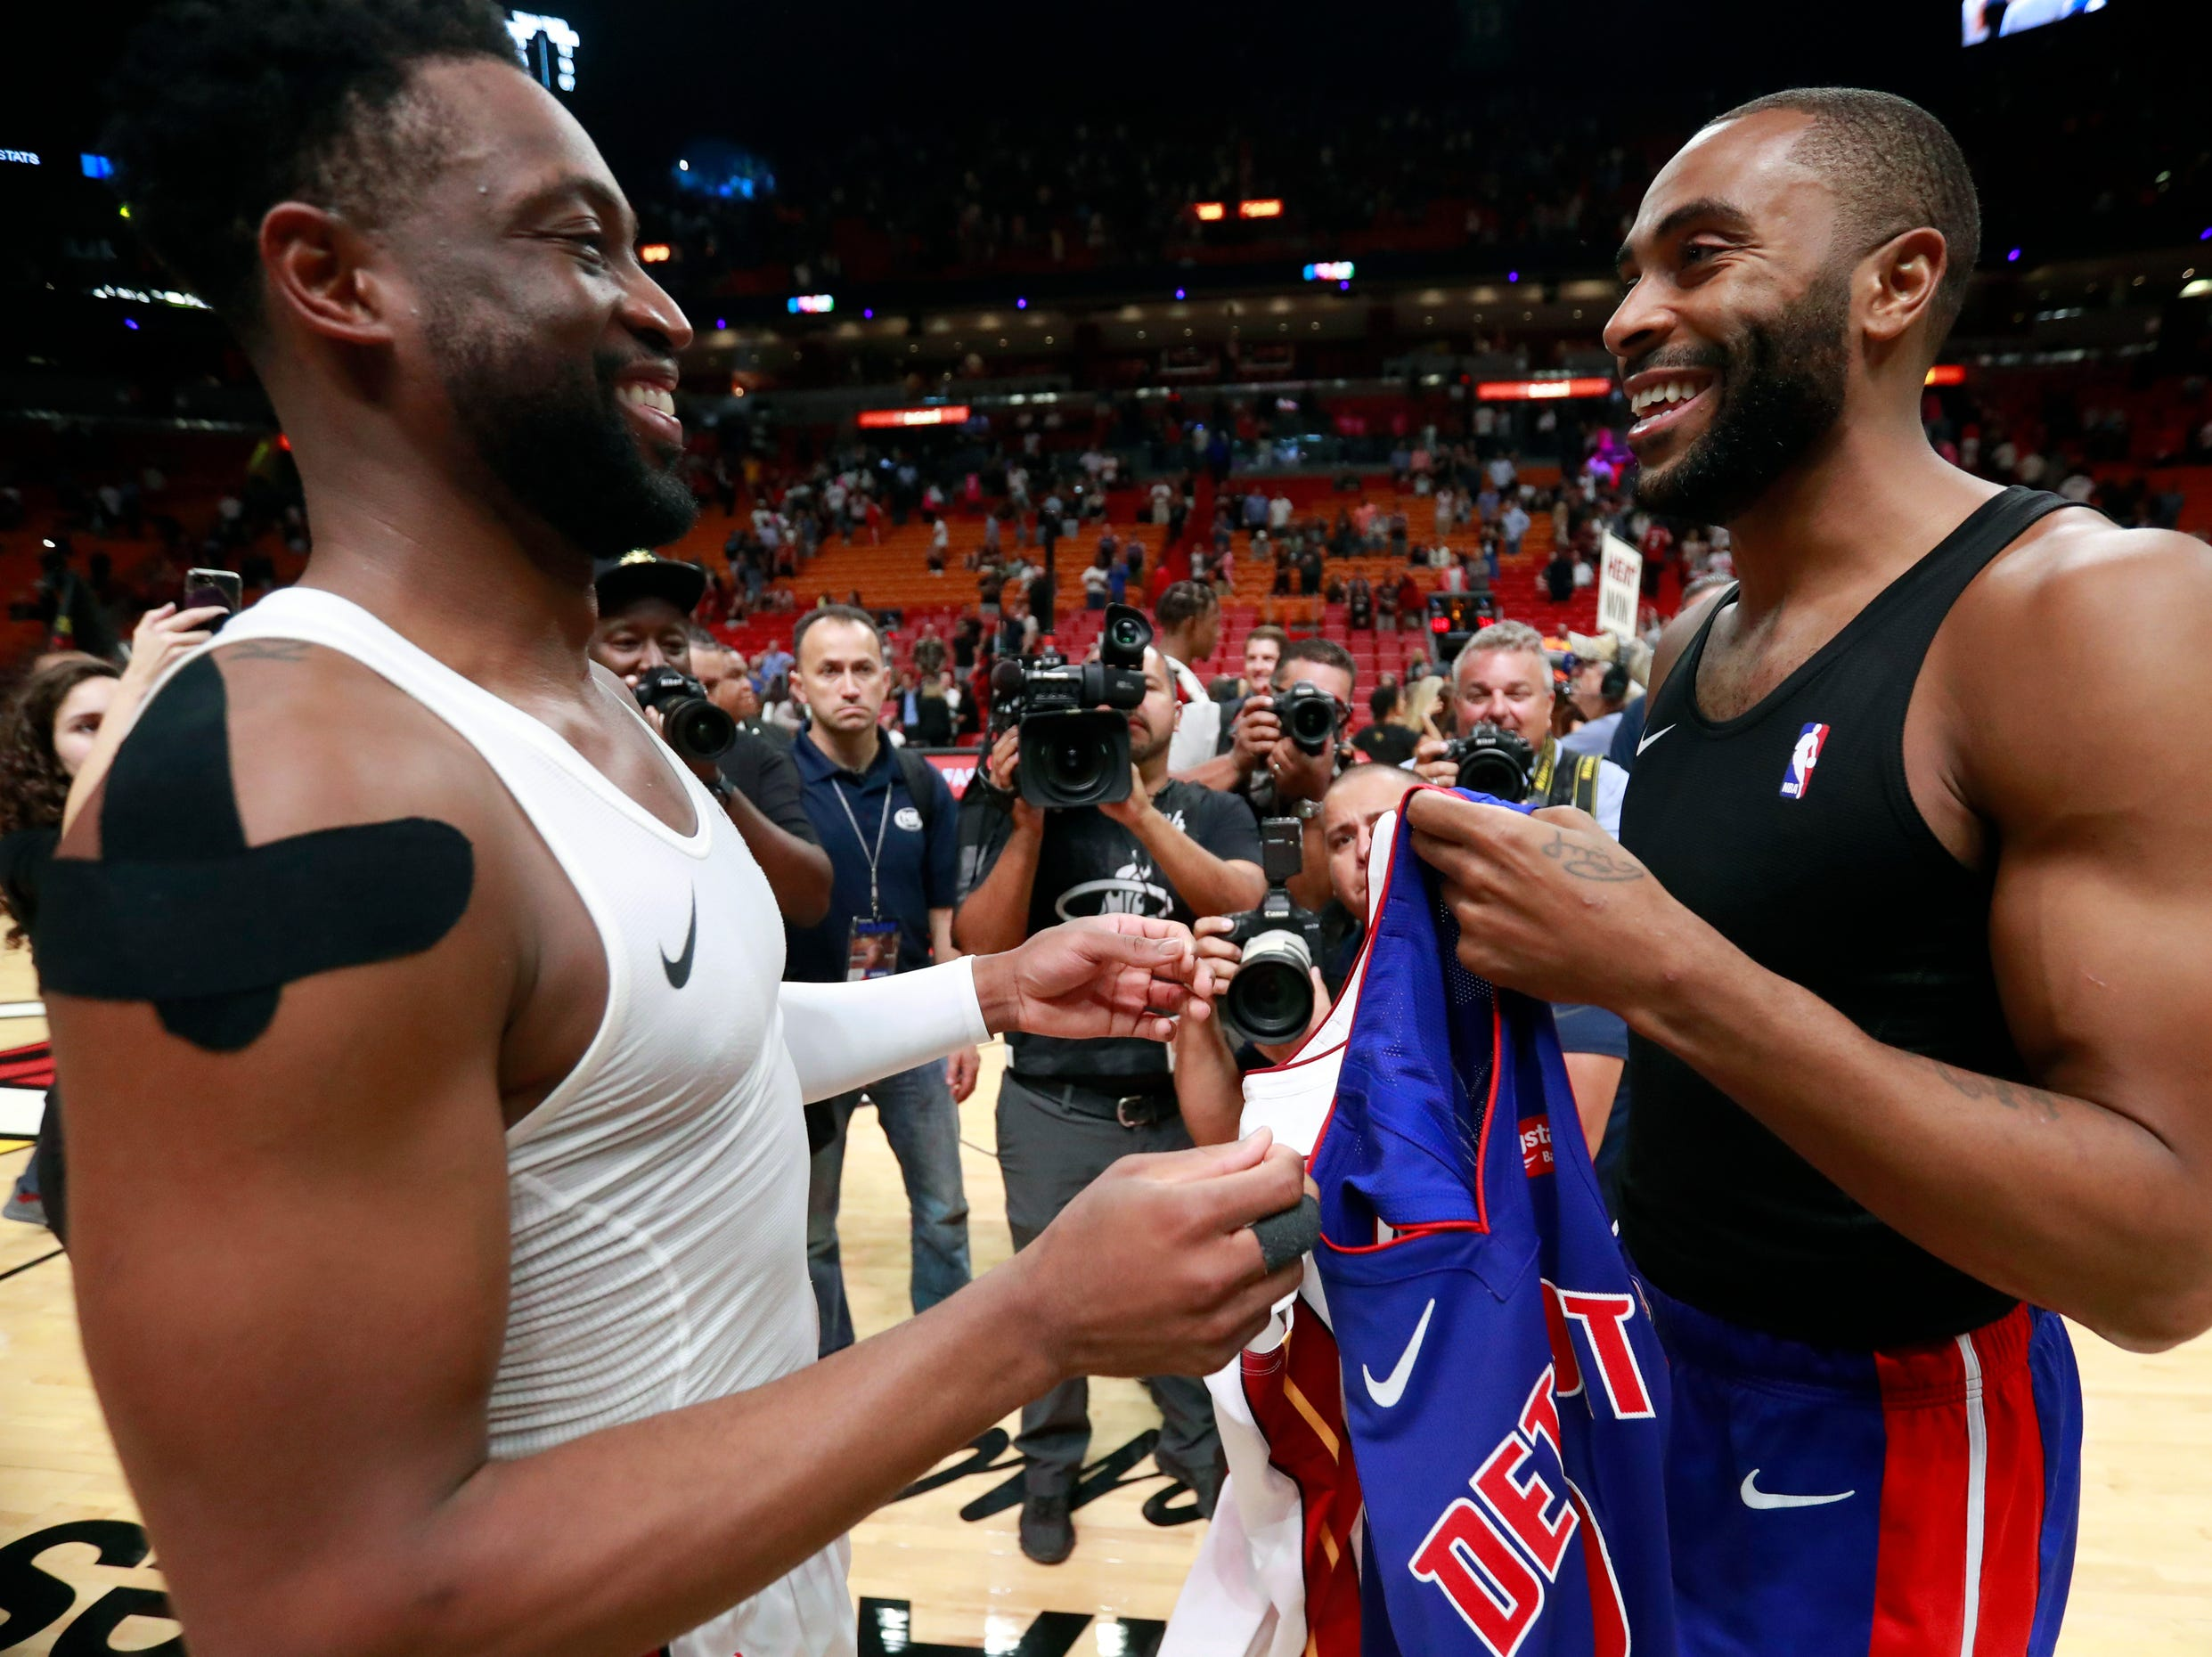 Miami Heat guard Dwyane Wade, left, and Detroit Pistons guard Wayne Ellington smile as they exchange jerseys after an NBA basketball game, Wednesday, March 13, 2019, in Miami. The Heat defeated the Pistons 108-74.